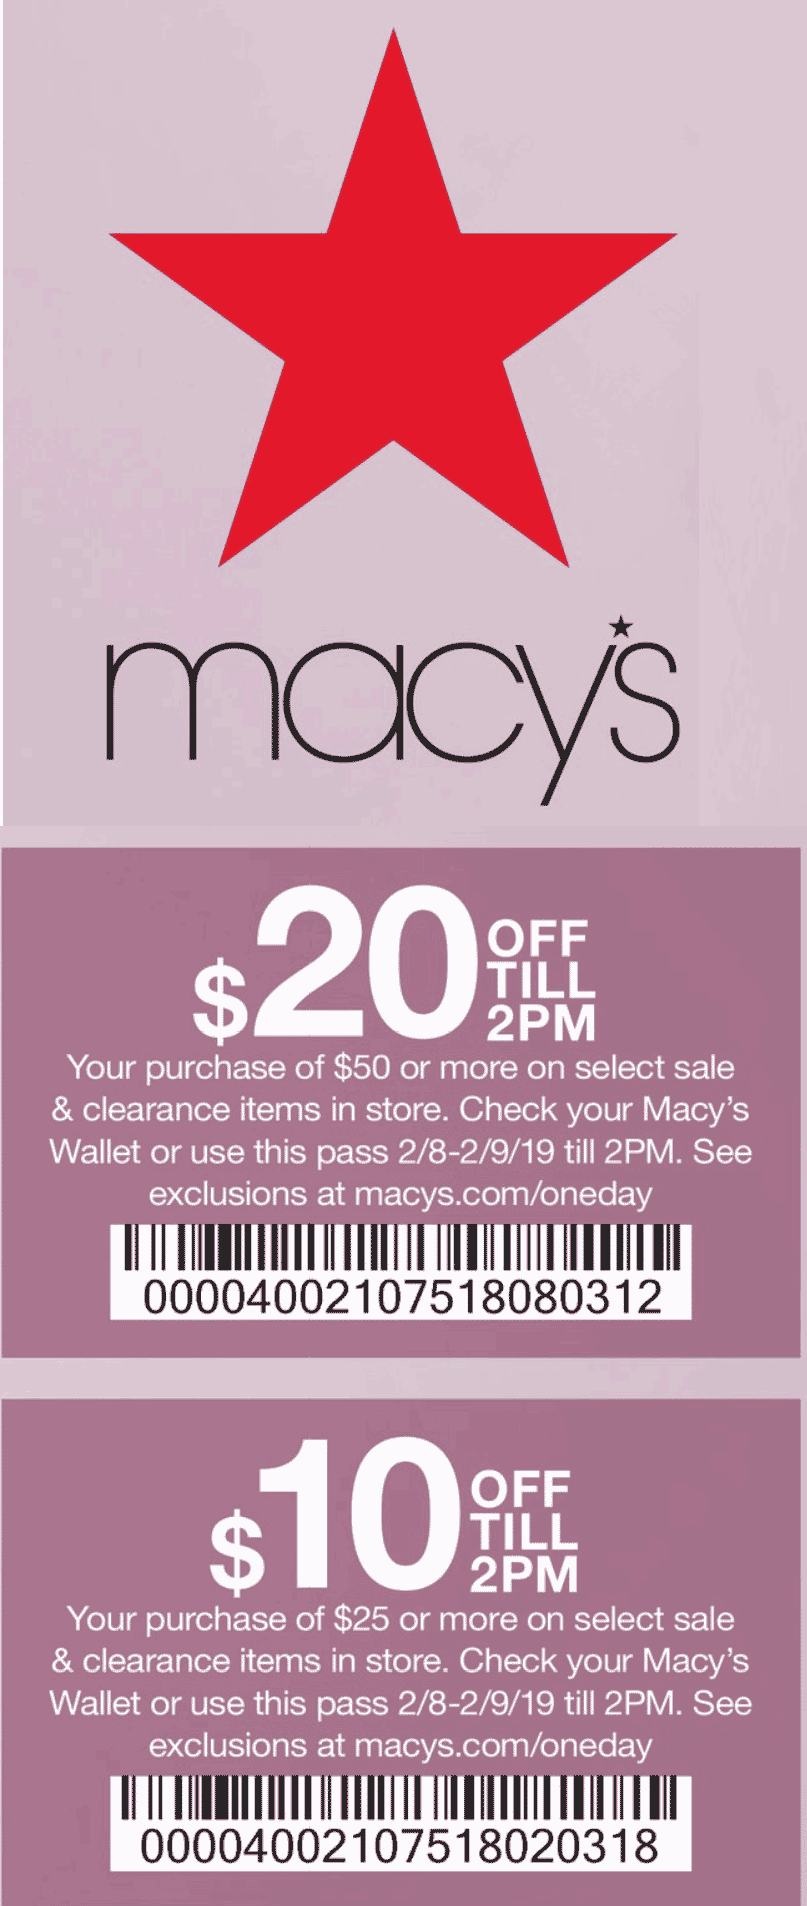 Macys Coupon July 2019 $10 off $25 & more til 2pm at Macys